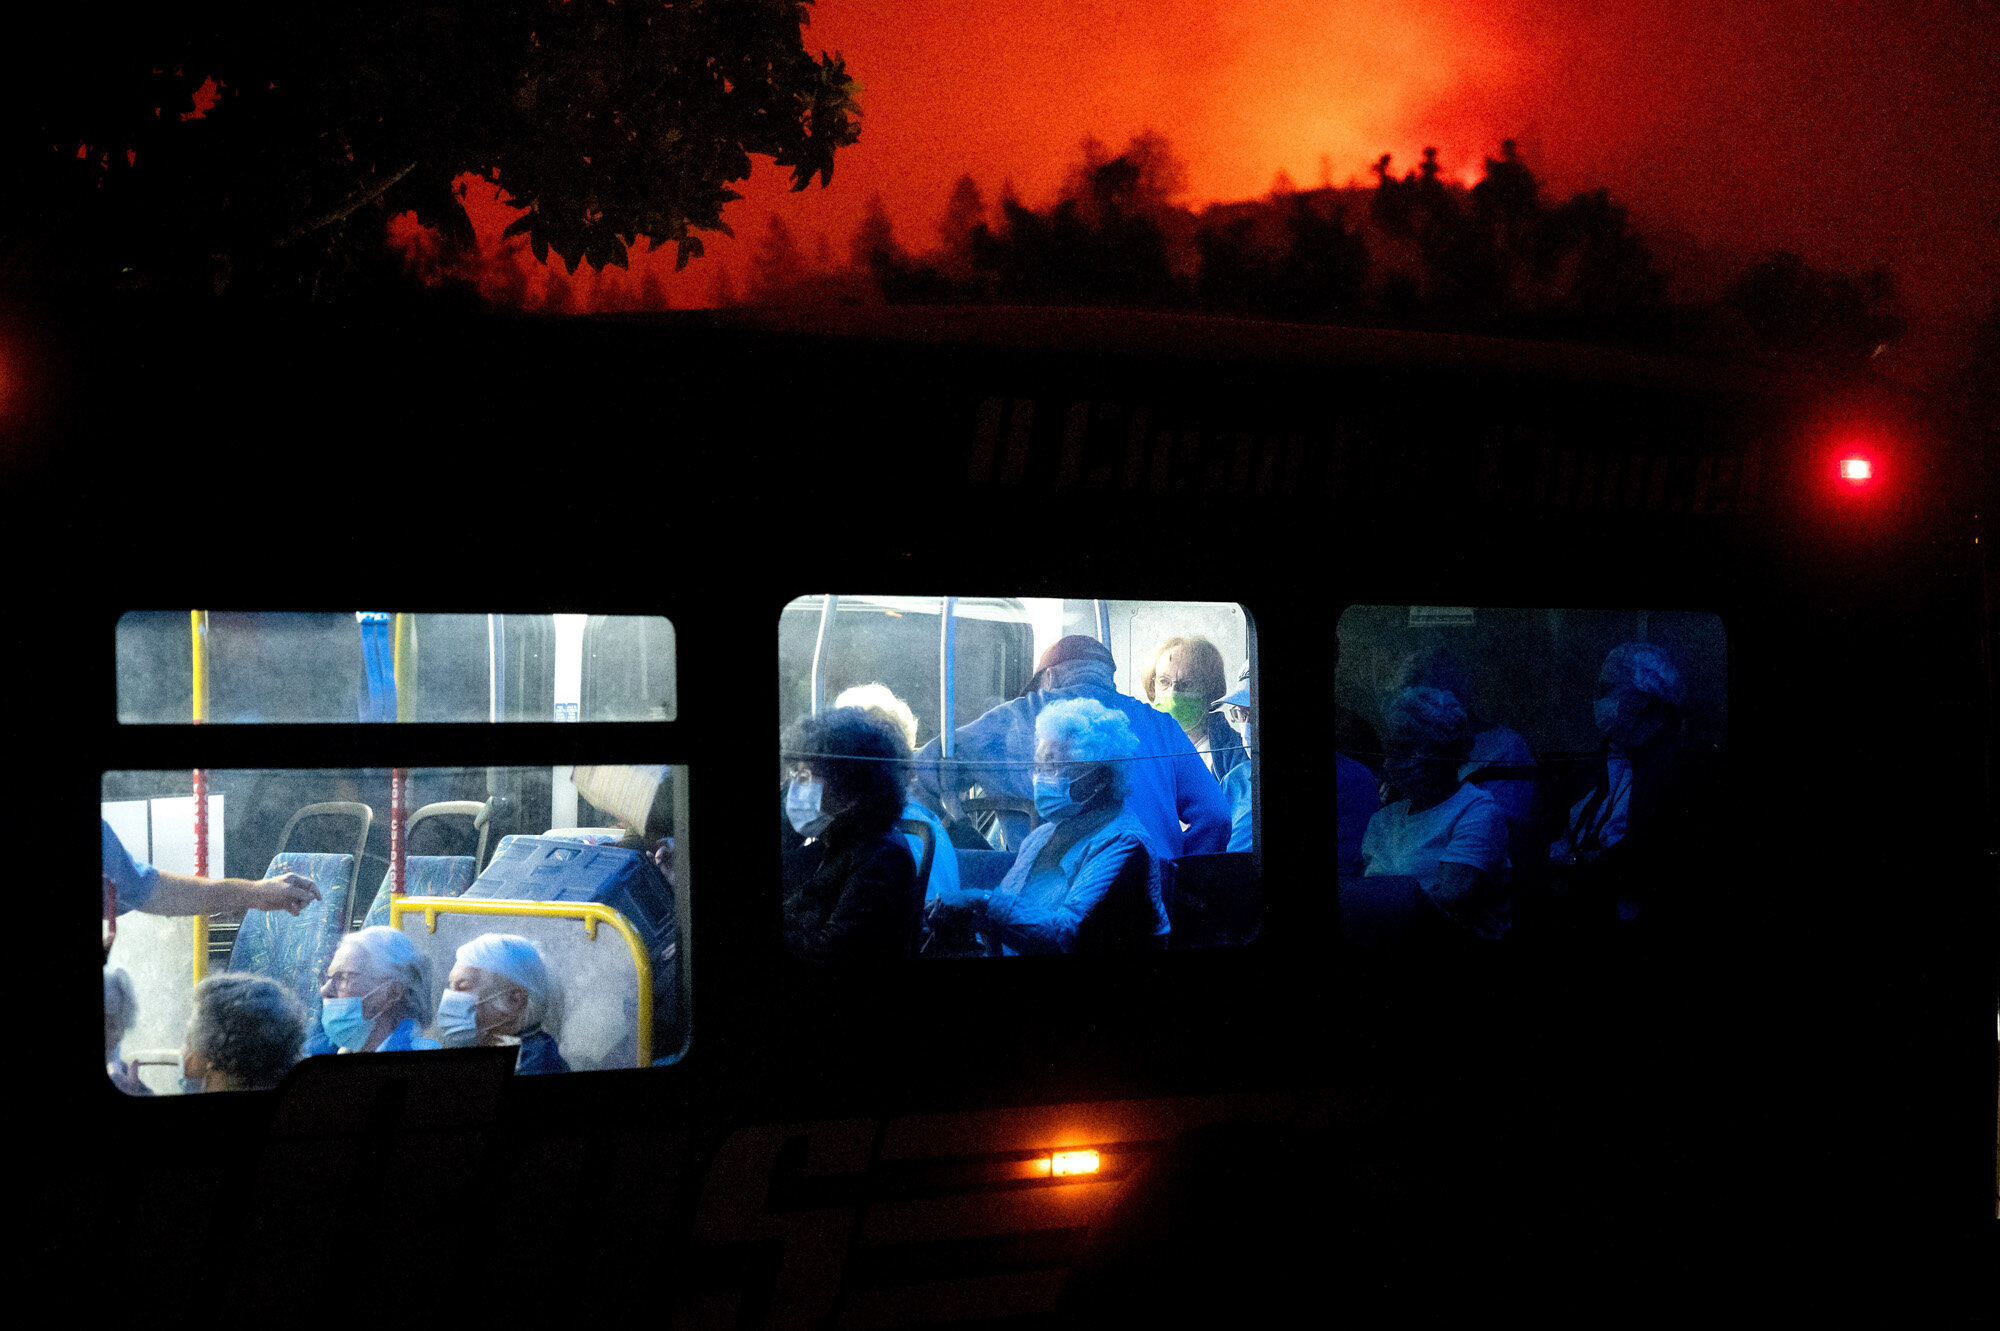 Residents of the Oakmont Gardens senior home evacuate on a bus as the Shady Fire approaches in Santa Rosa Calif., on Sept. 28, 2020. (AP Photo/Noah Berger)